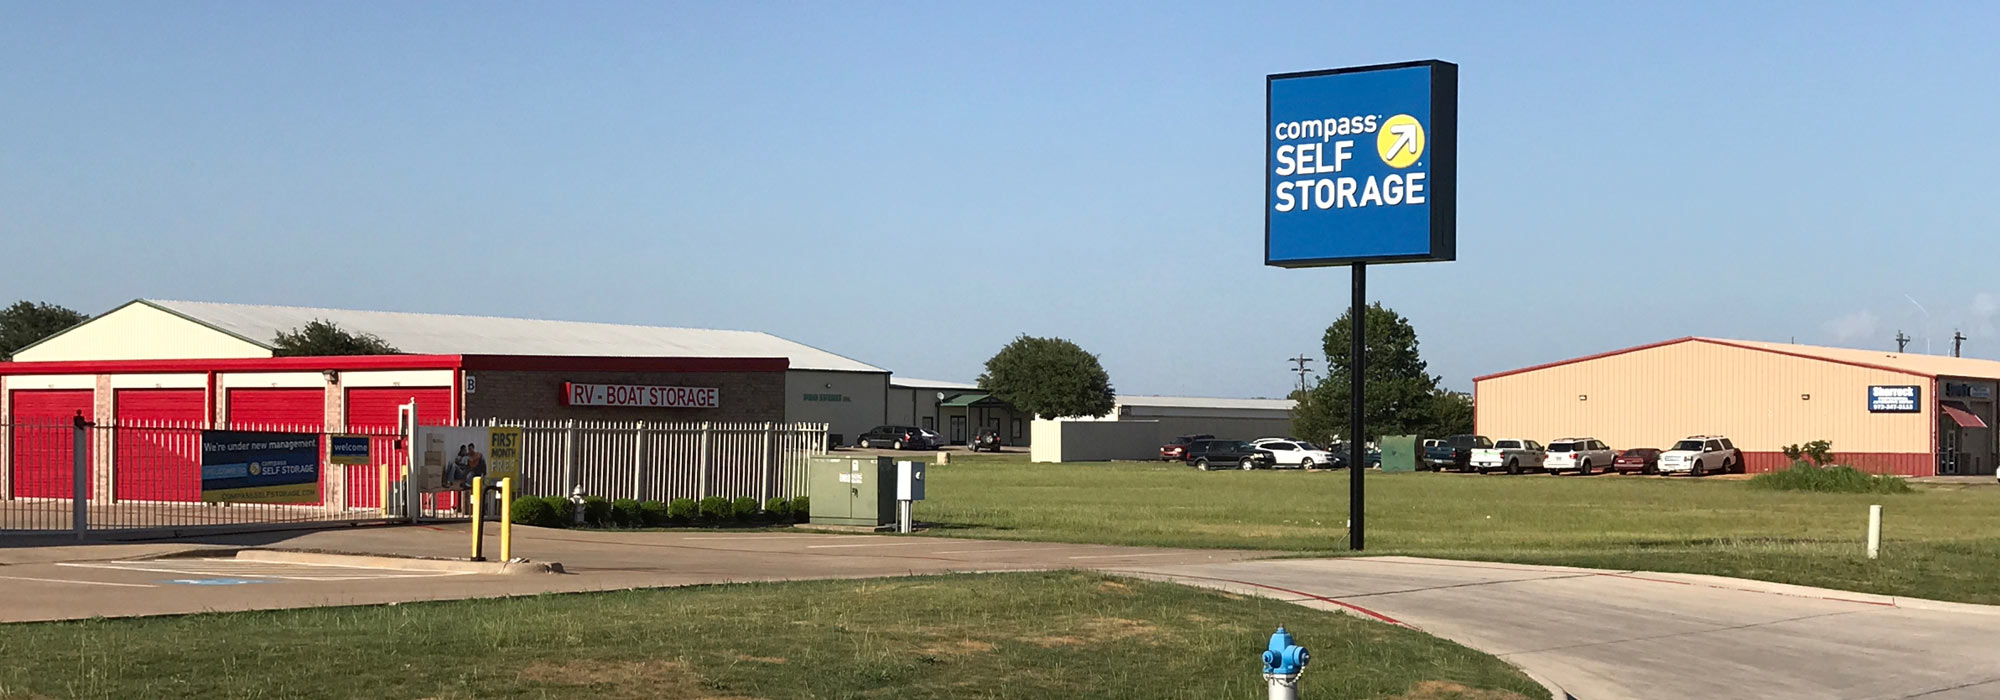 Self storage in McKinney TX